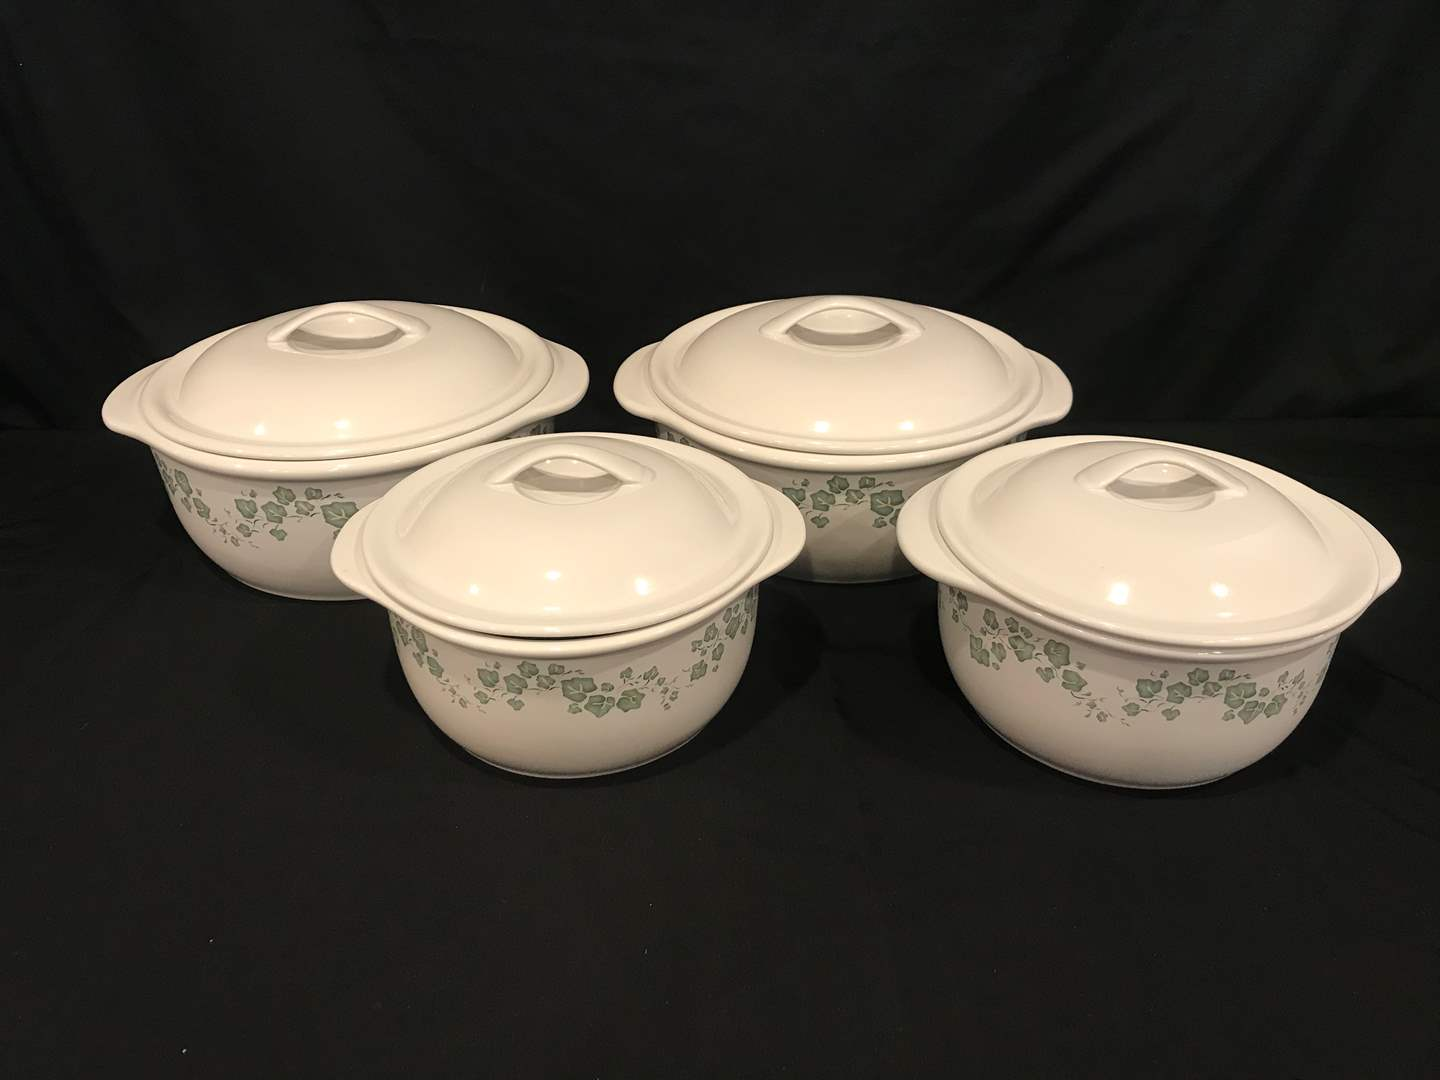 Lot # 84 - 4 Corelle Coordinates Stoneware Baking Dishes (main image)